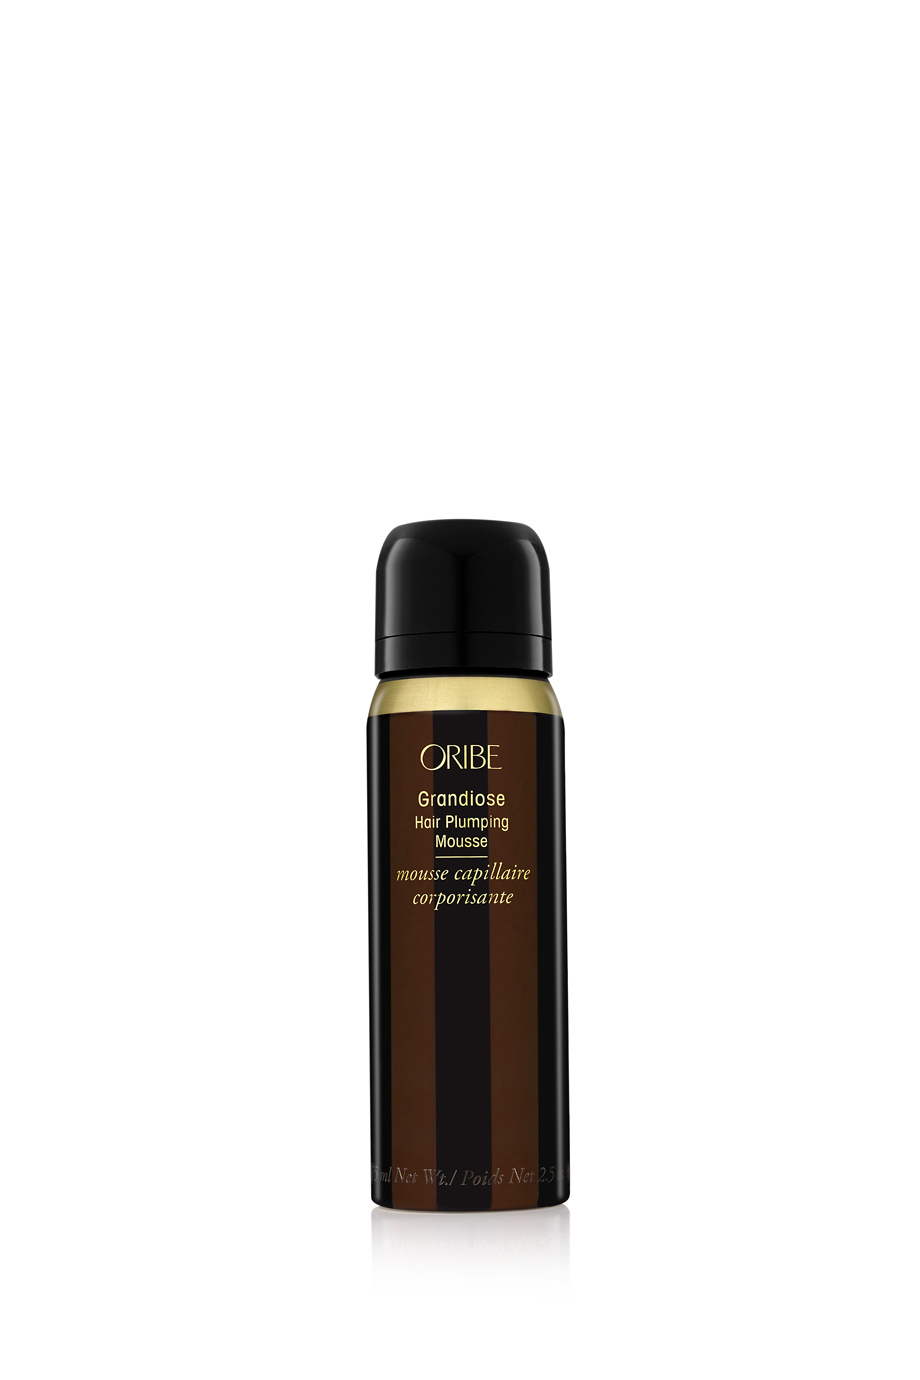 Мусс для объма Oribe Grandiose Hair Plumping Mousse. 75 мл.